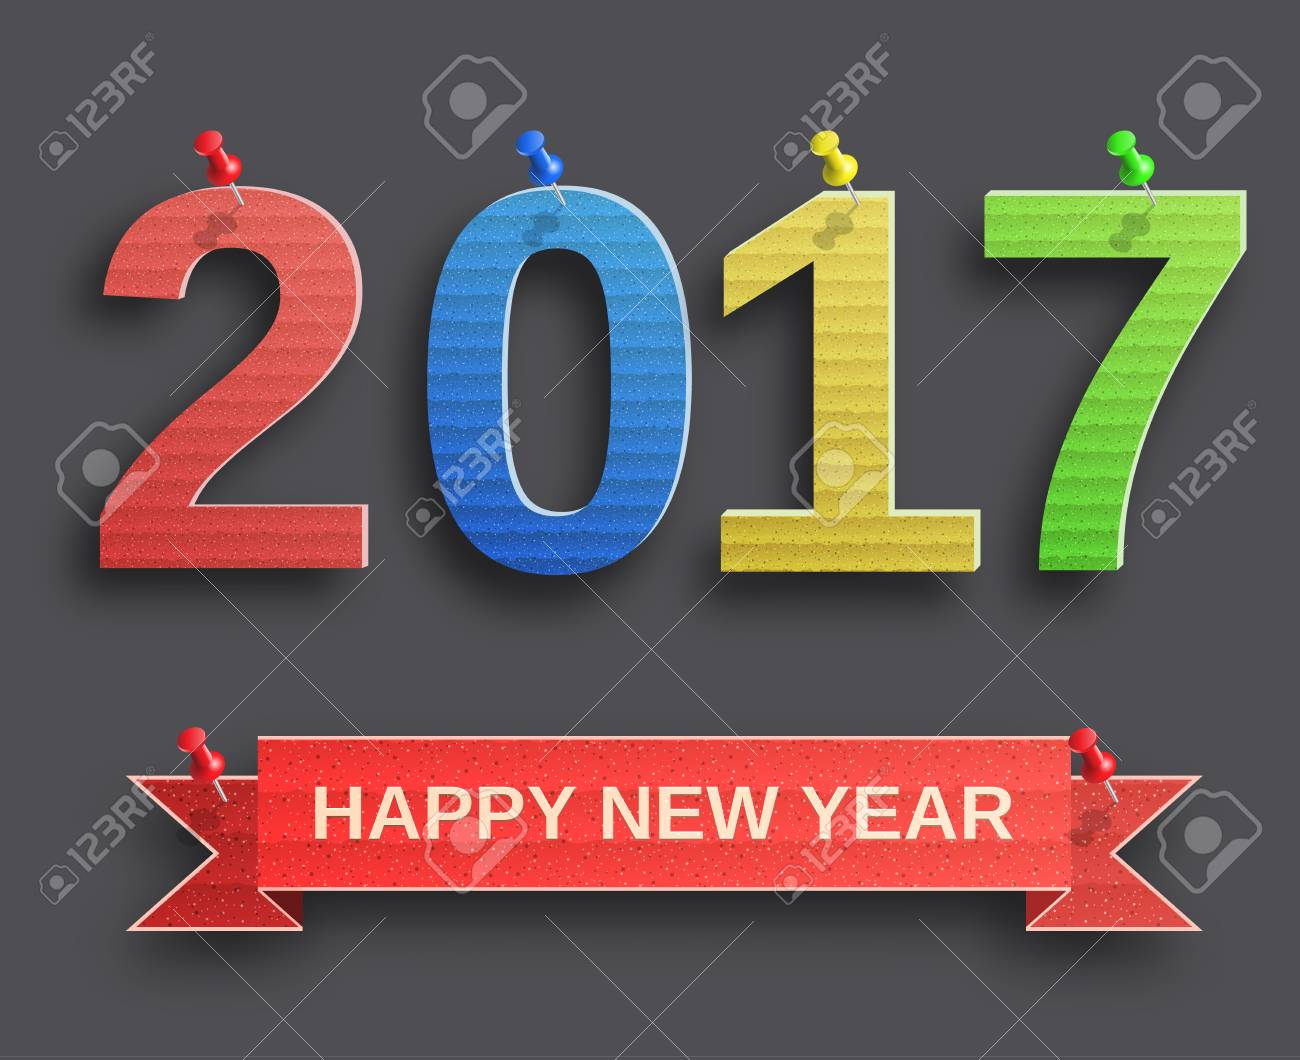 Happy New Year 2017 Design From Cardboard With Pin Design Element